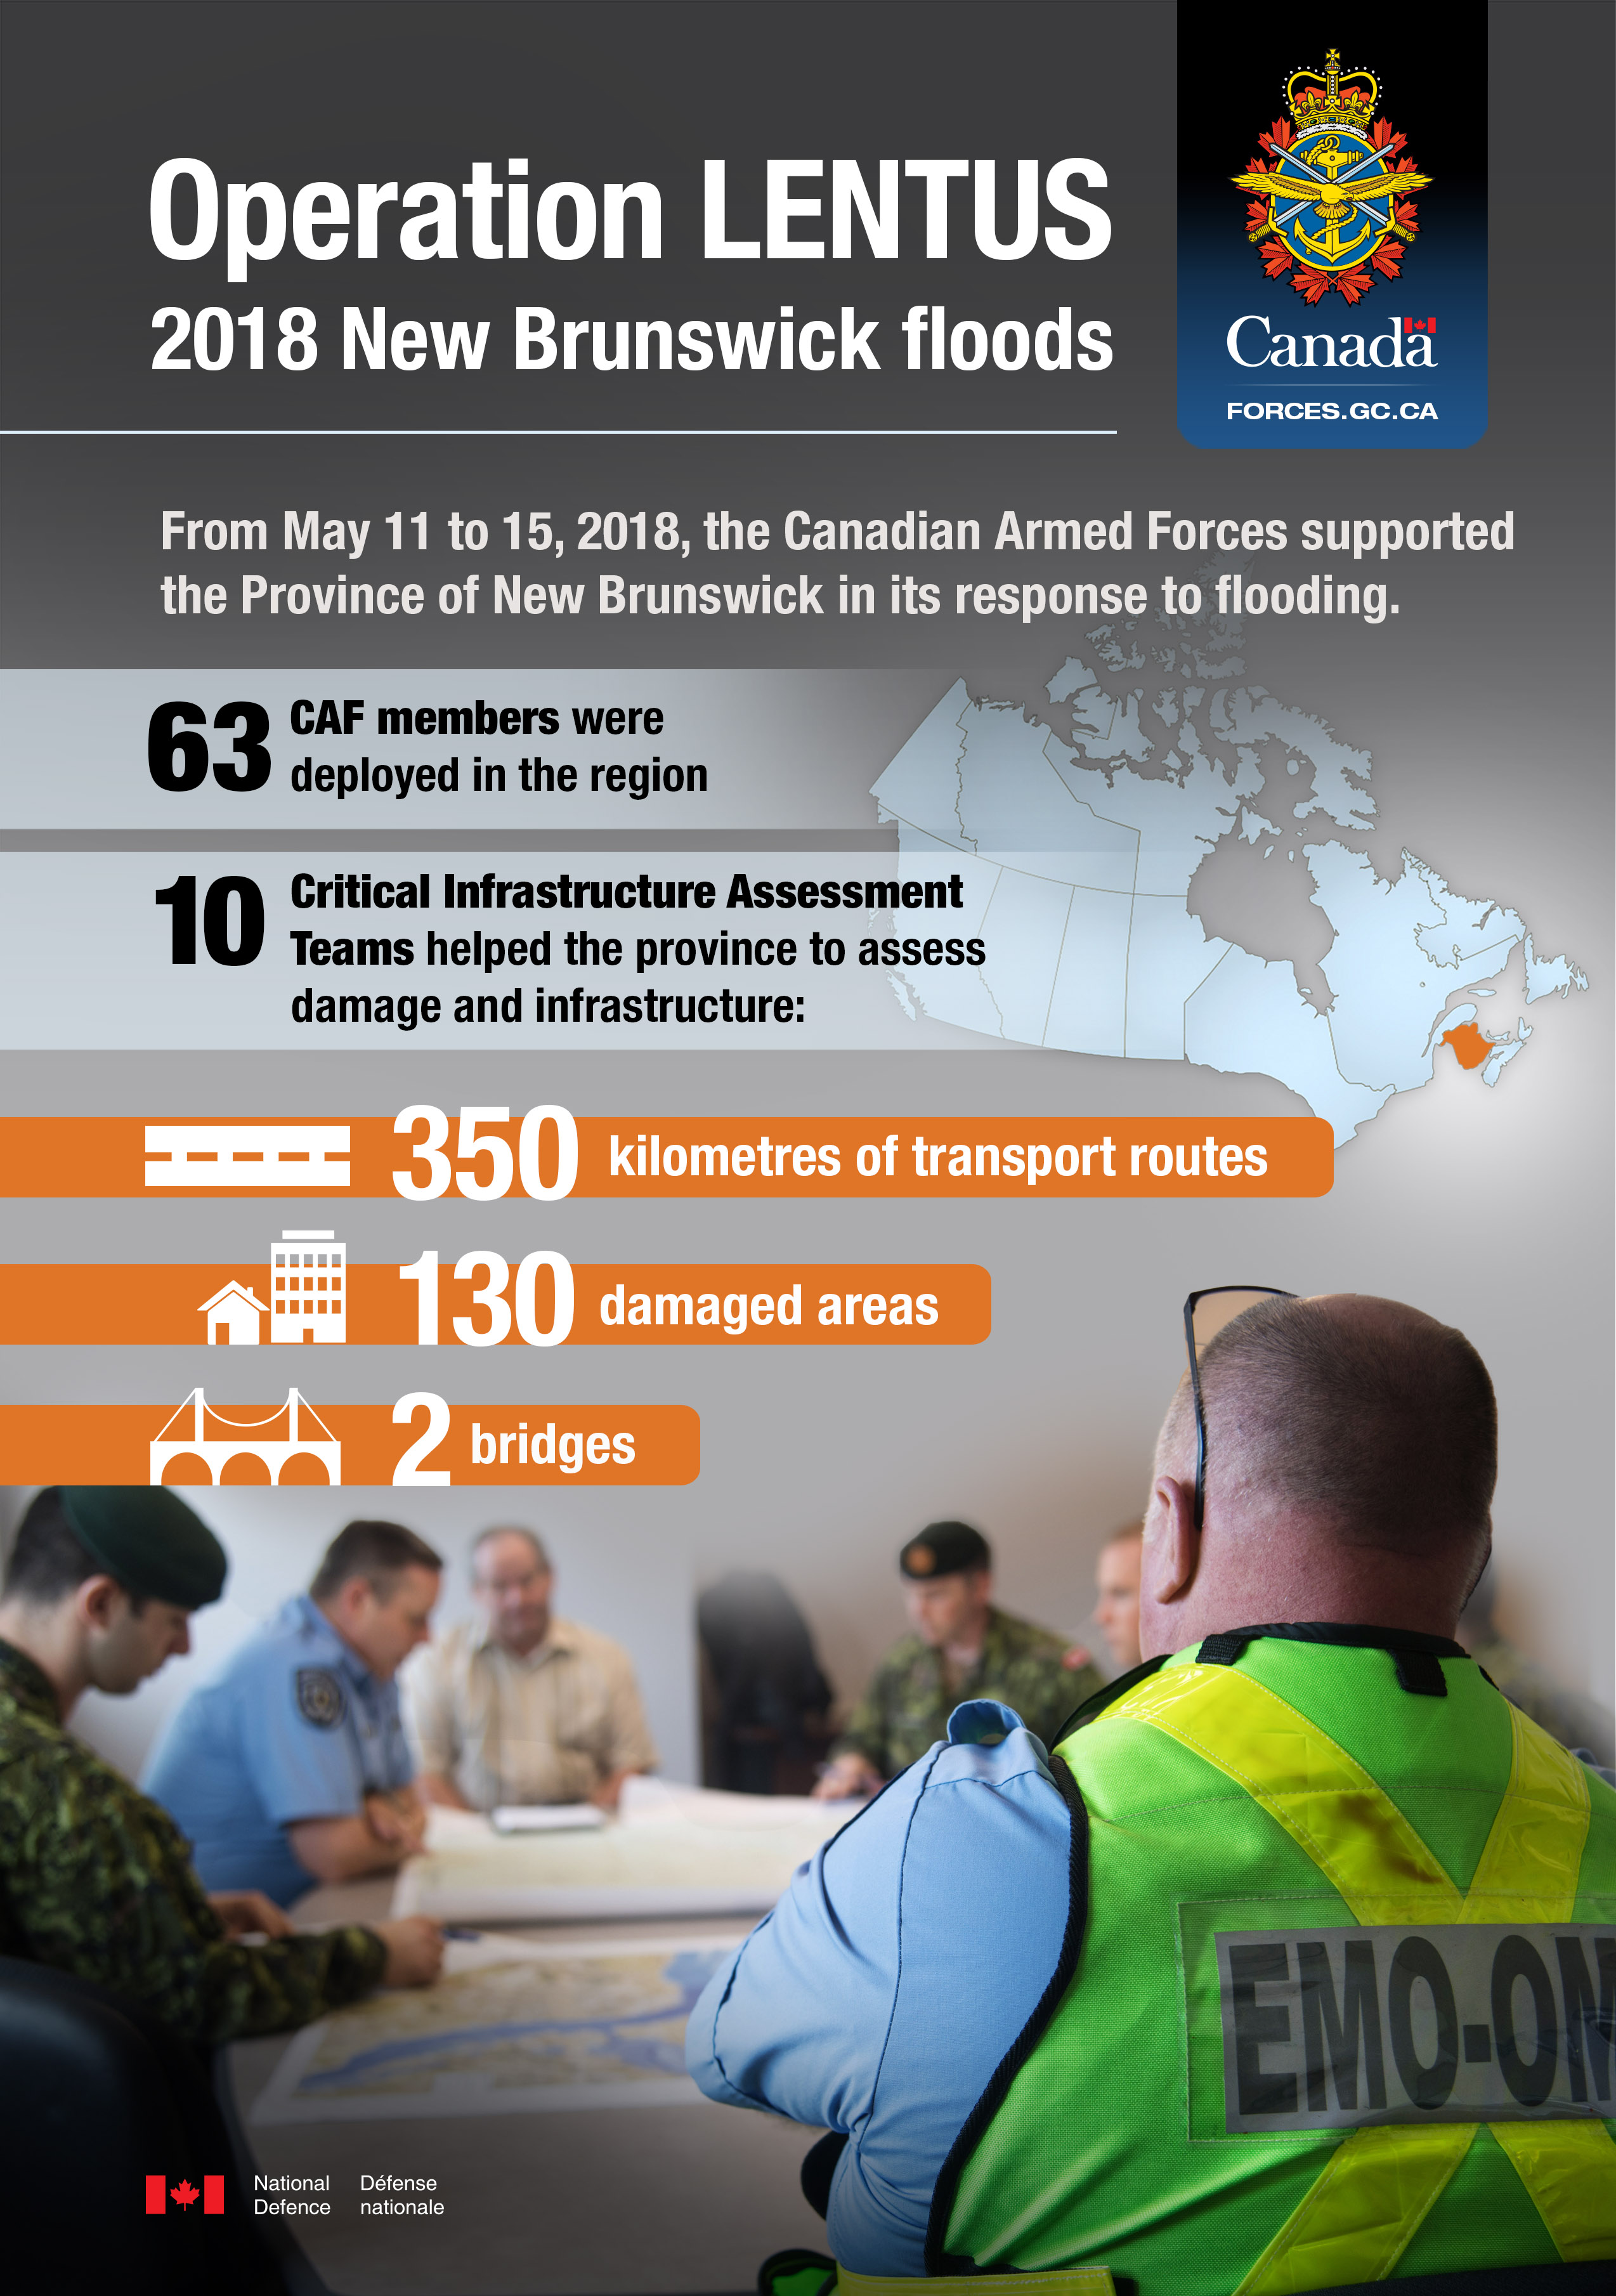 Infographic about Operation LENTUS 2018, the CAF response to flooding in New Brunswick.